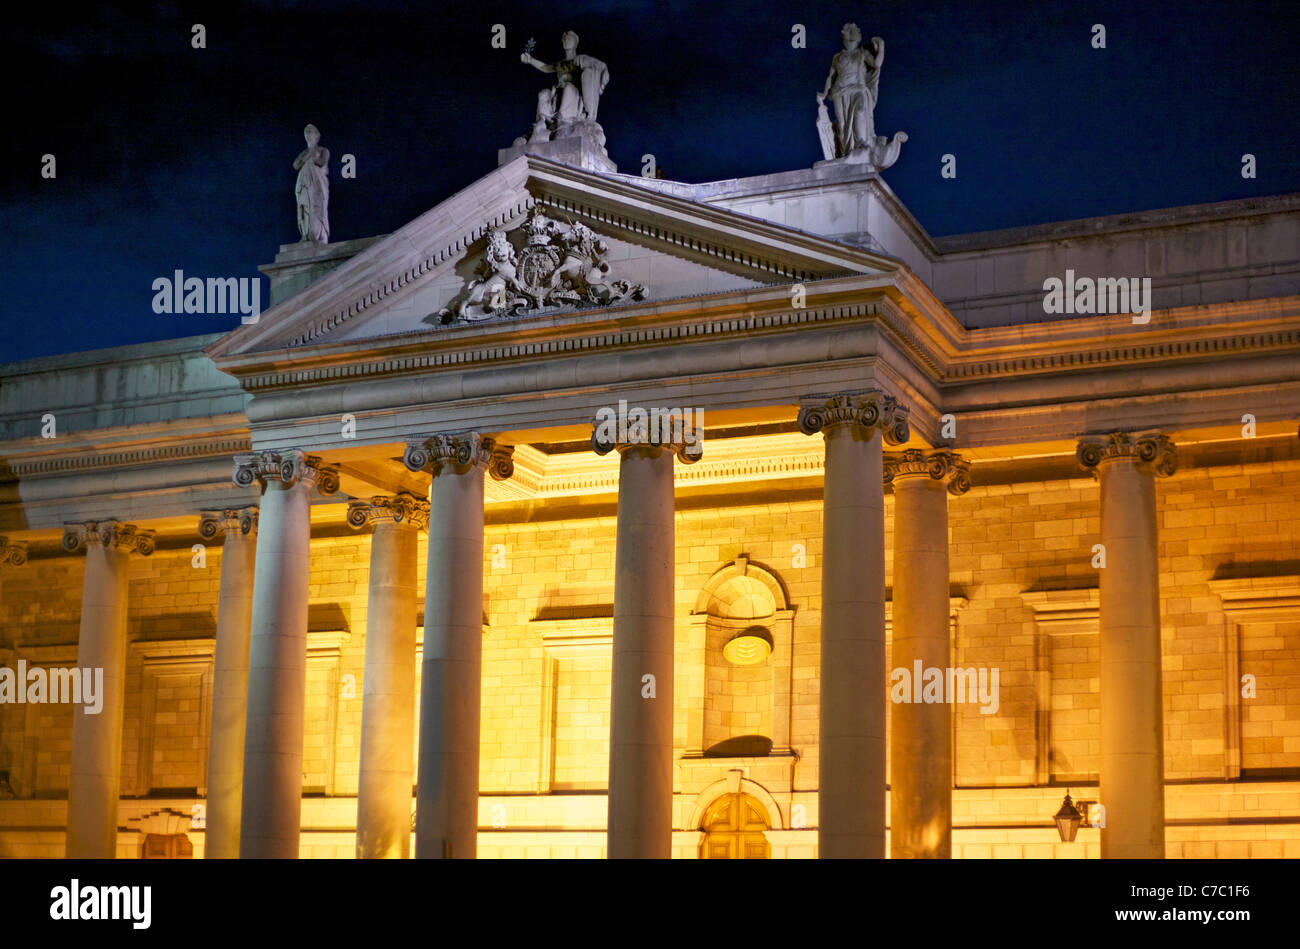 Bank of Ireland in centre of Dublin at night - Stock Image